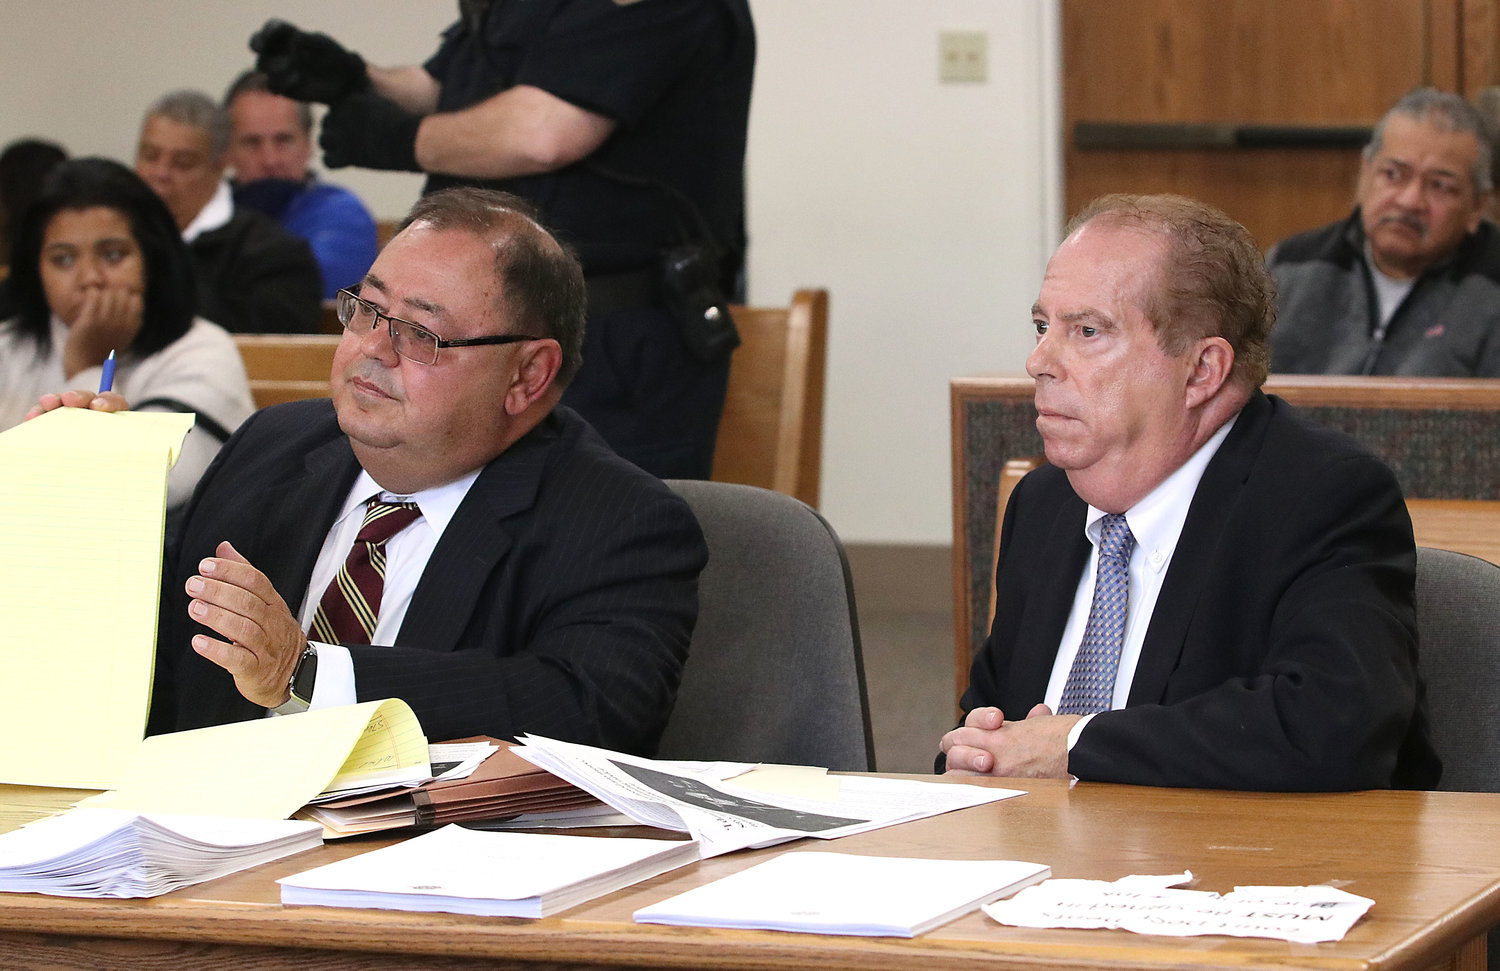 Attorney Fausto Anguilla (left) in court with his client, David E. Barboza, on Monday morning.